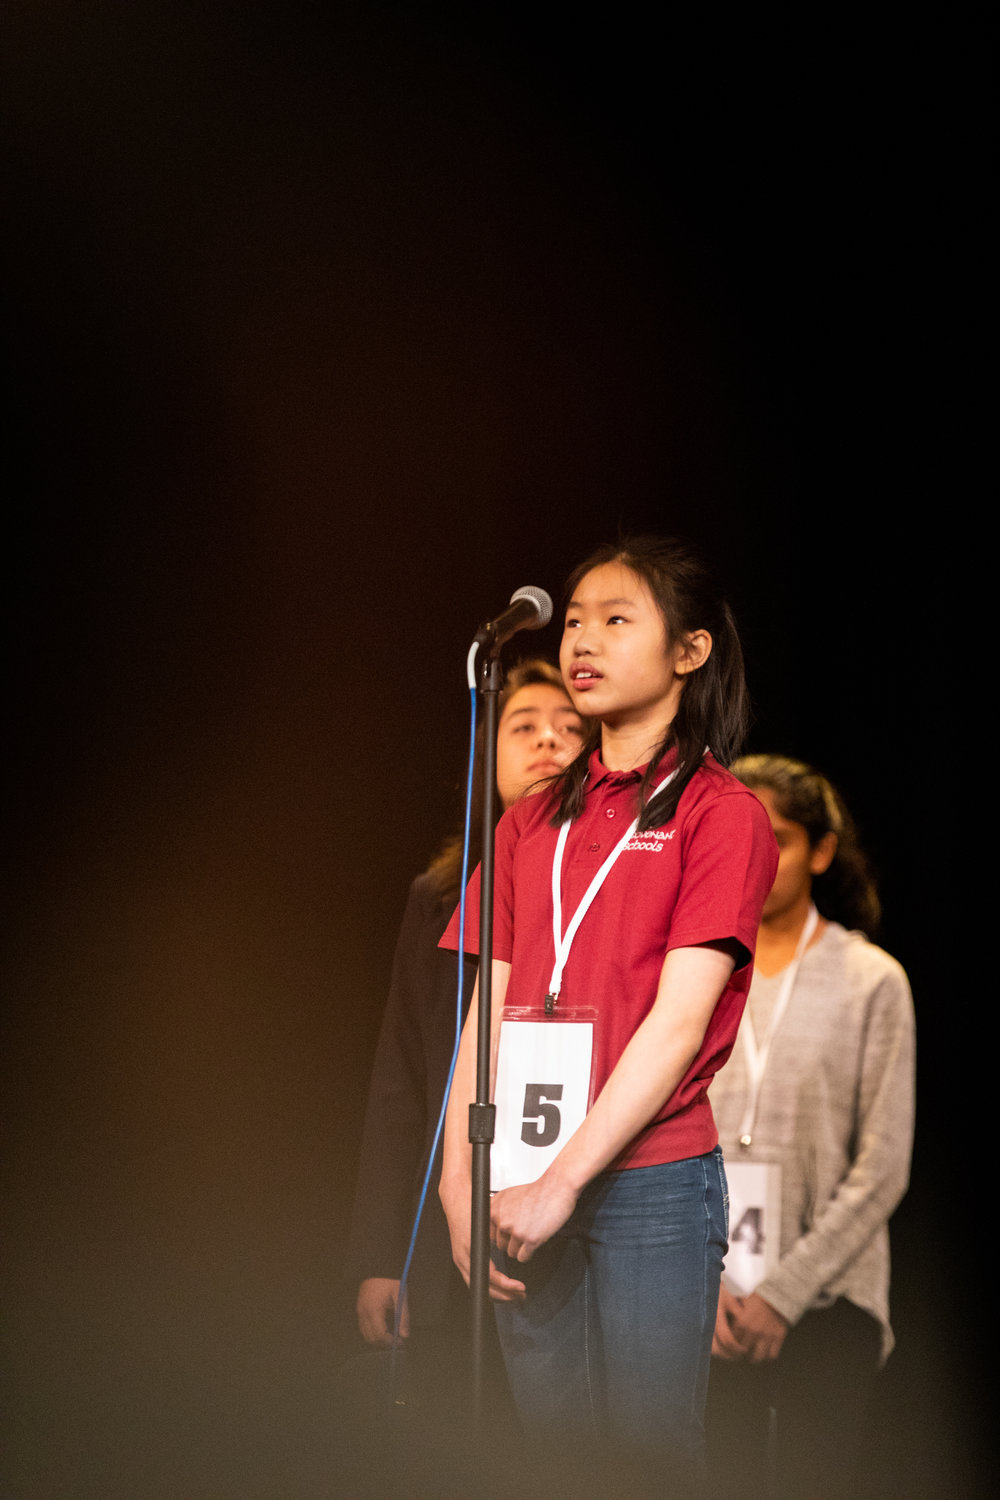 Jenna Ng of New Covenant Schools spells out a word during one of the final rounds of the Lynchburg Regional Spelling Bee on March 9, 2019 at Dunbar Middle School for Innovation.